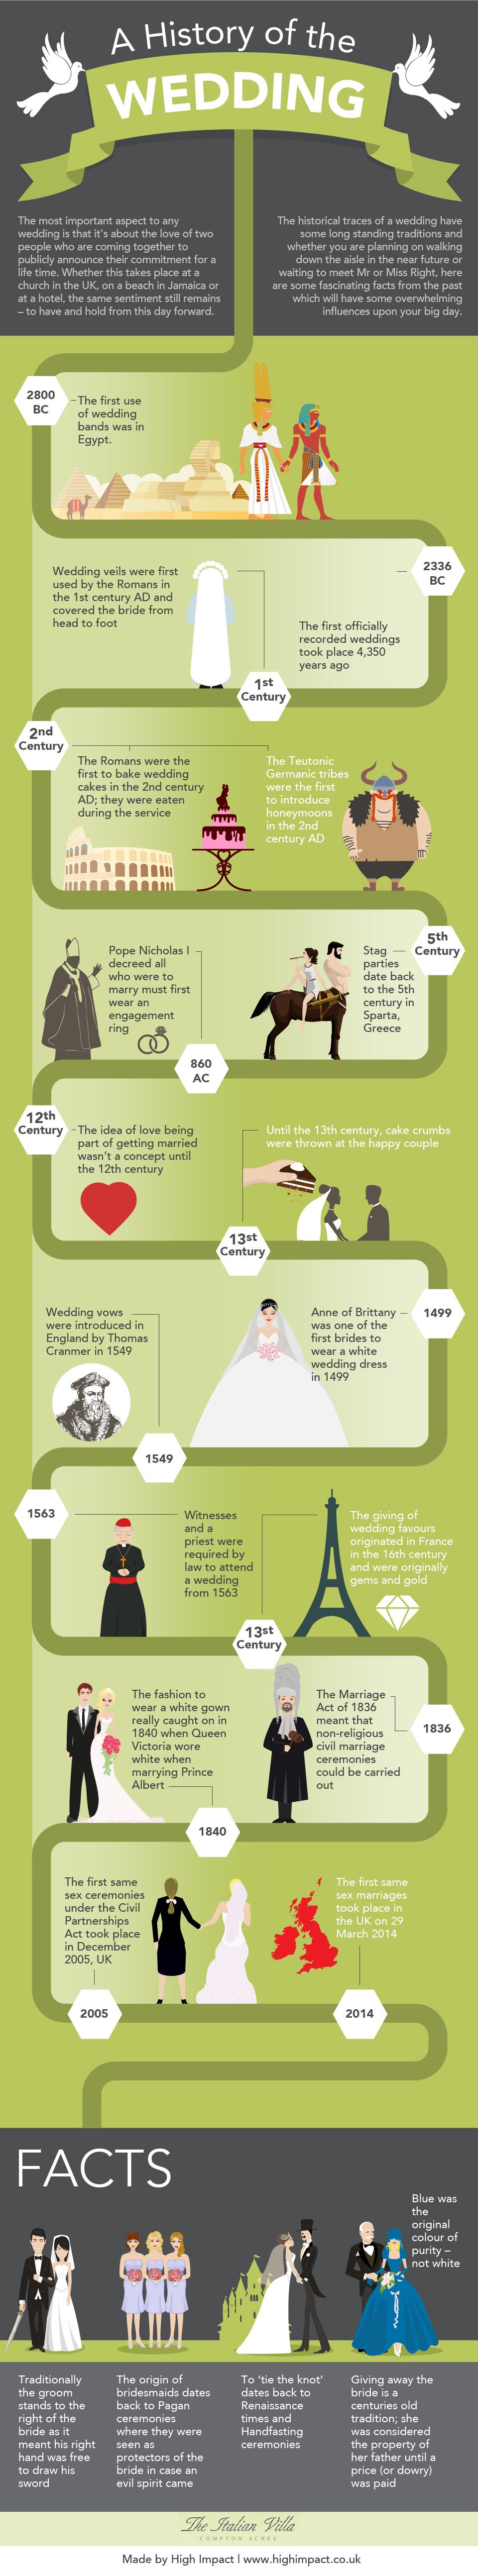 A History of the Wedding